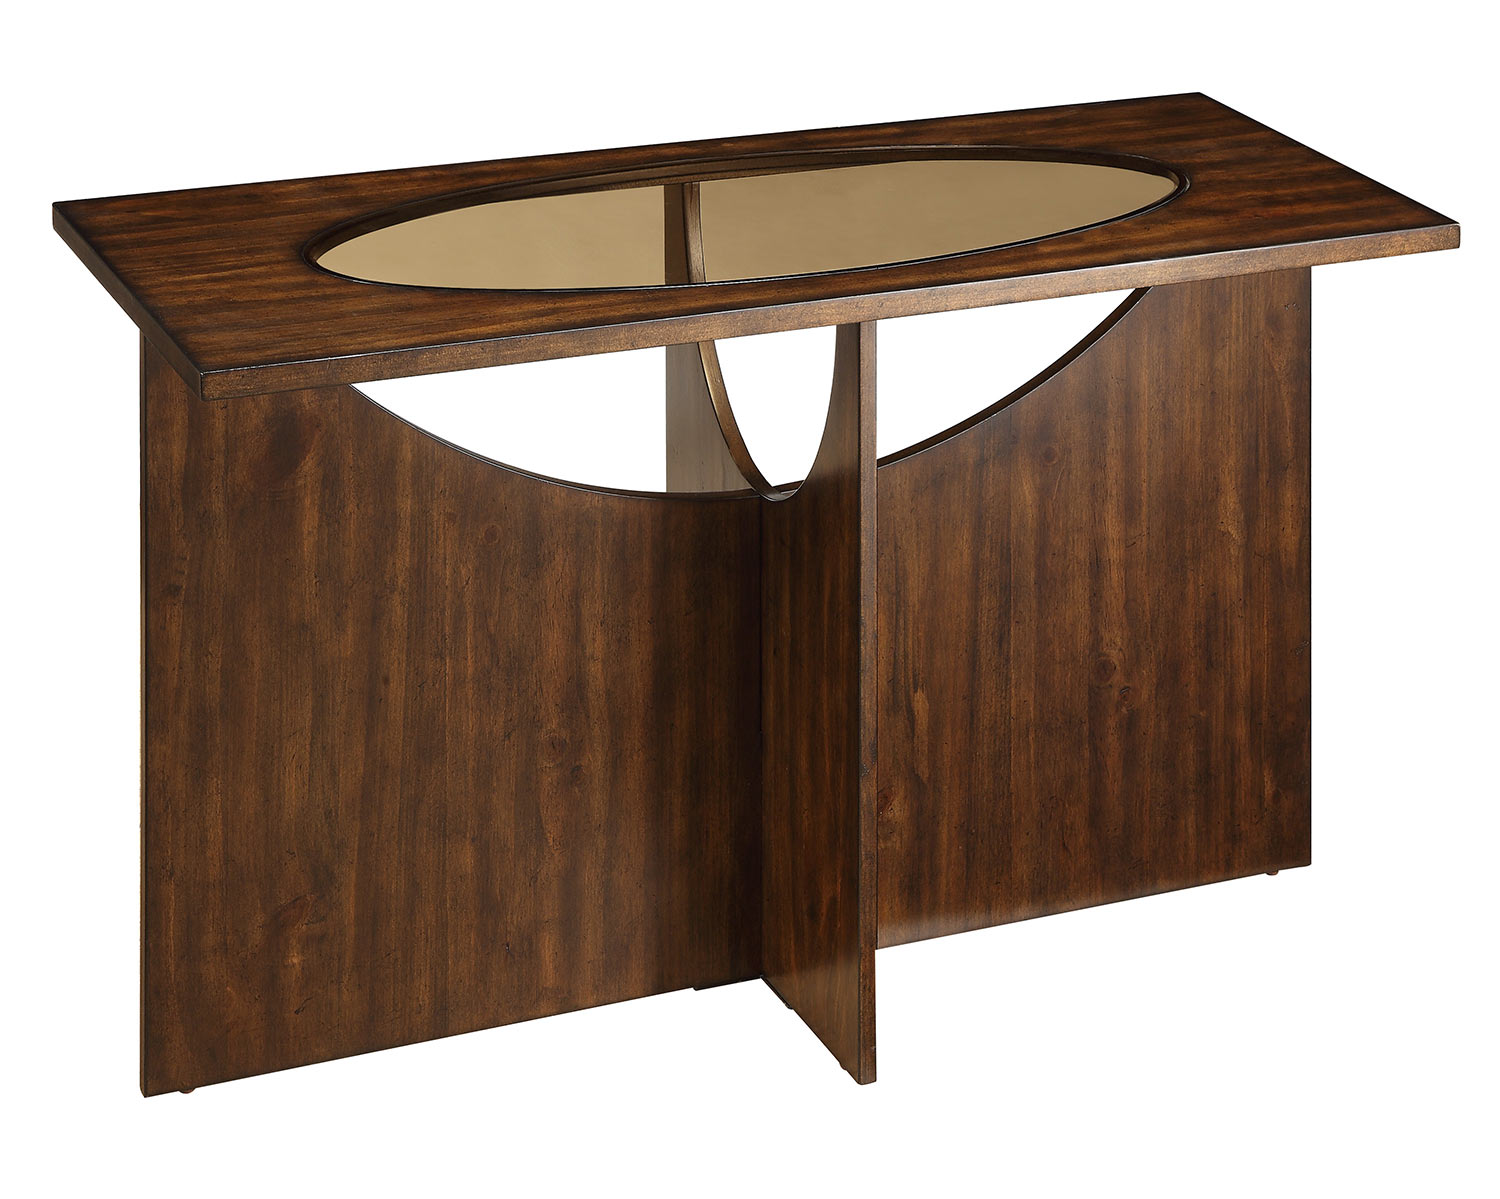 Homelegance Akita Sofa Table - Cherry